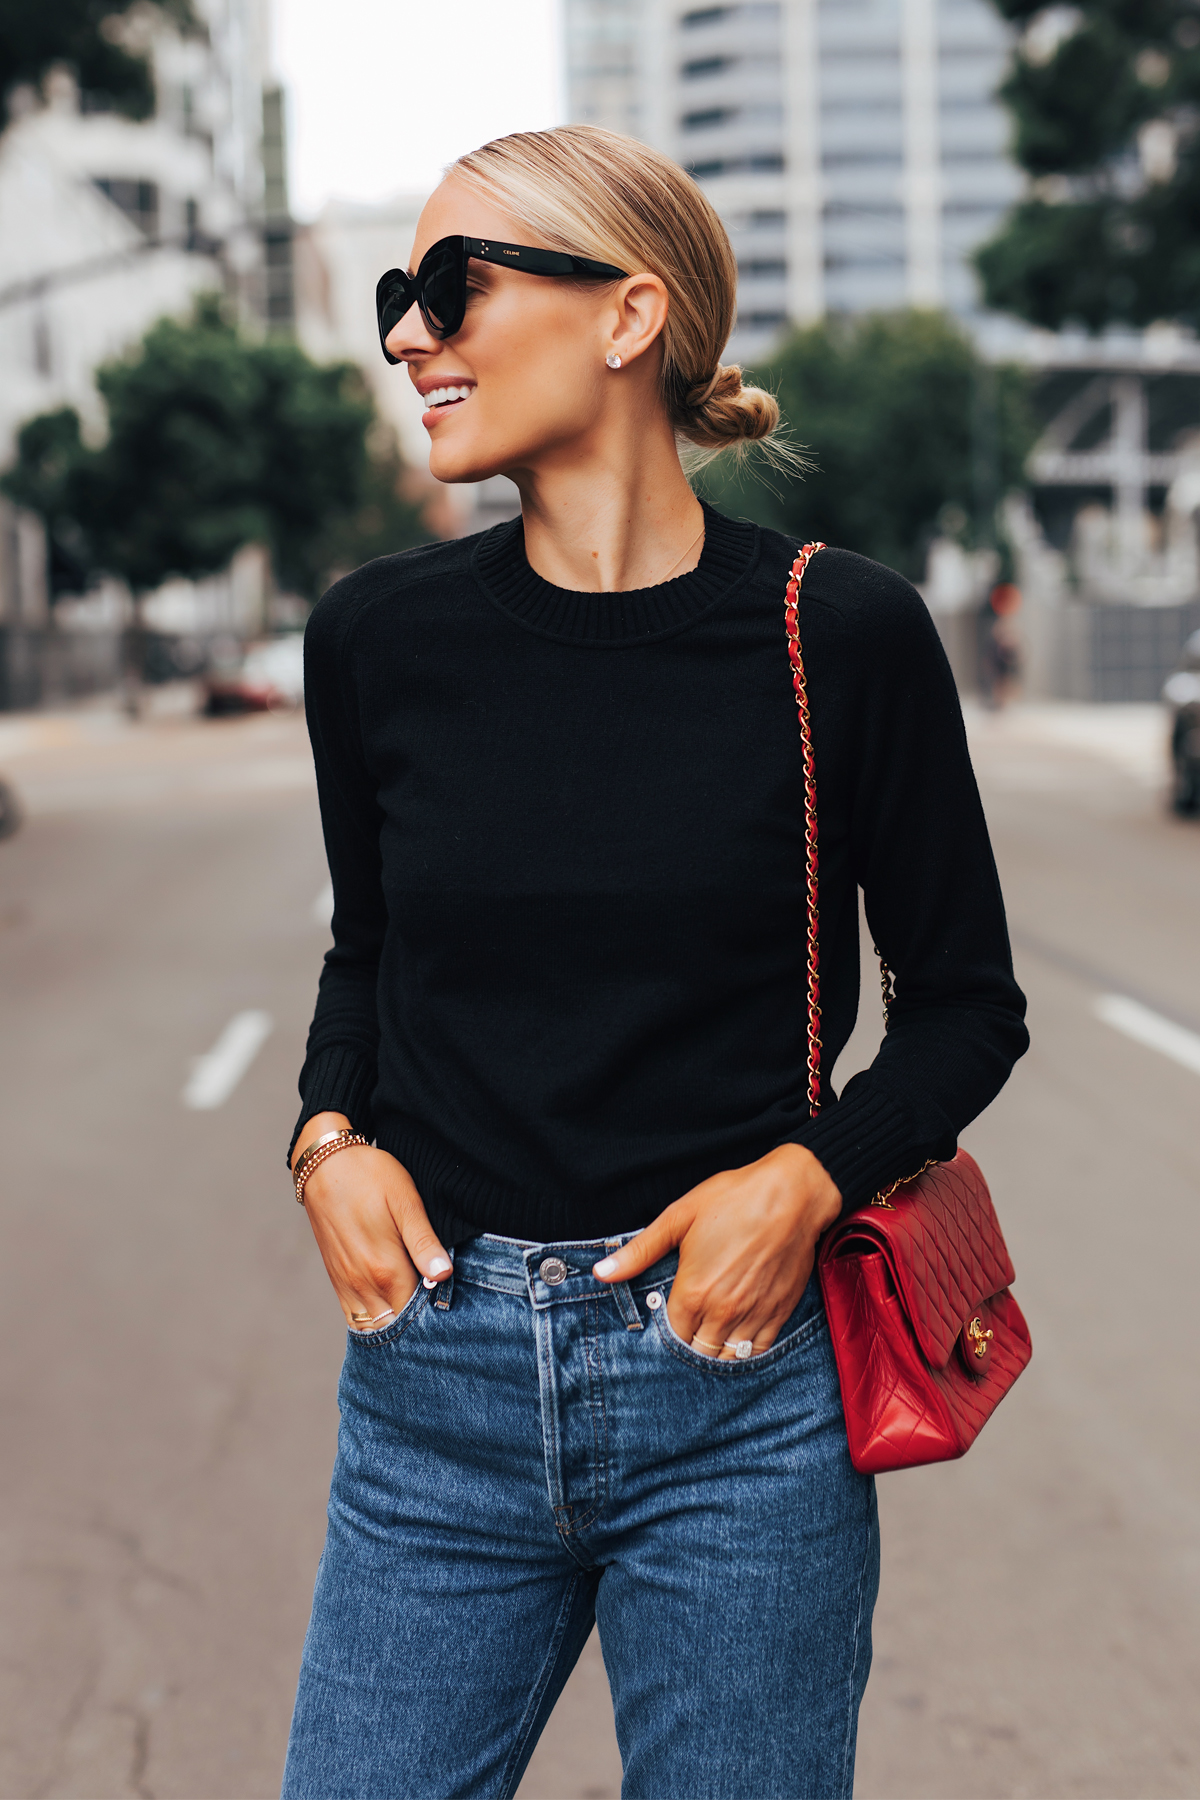 Fashion Jackson Wearing Everlane Black Cashmere Sweater Everlane Relaxed Jeans Chanel Red Handbag